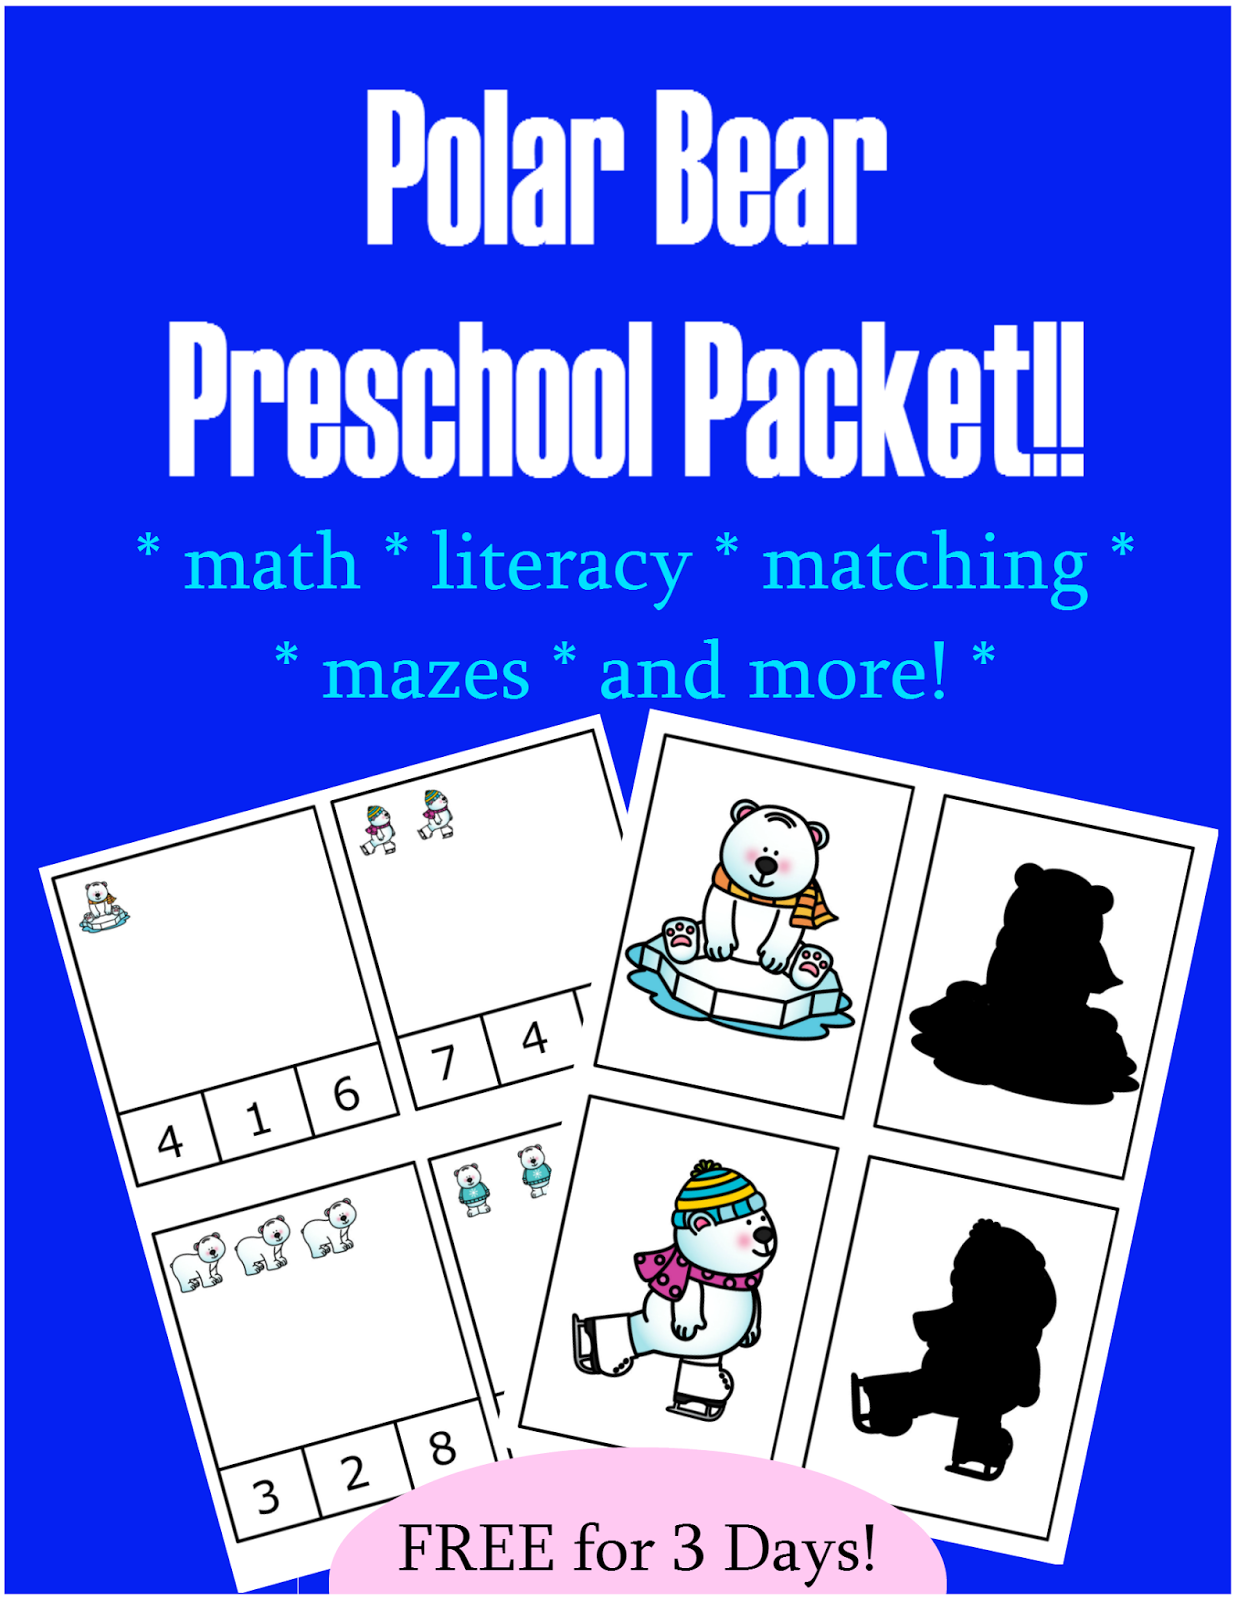 Polar Bear Preschool Packet **FREE for 3 DAYS ONLY** | Preschool Powol ...